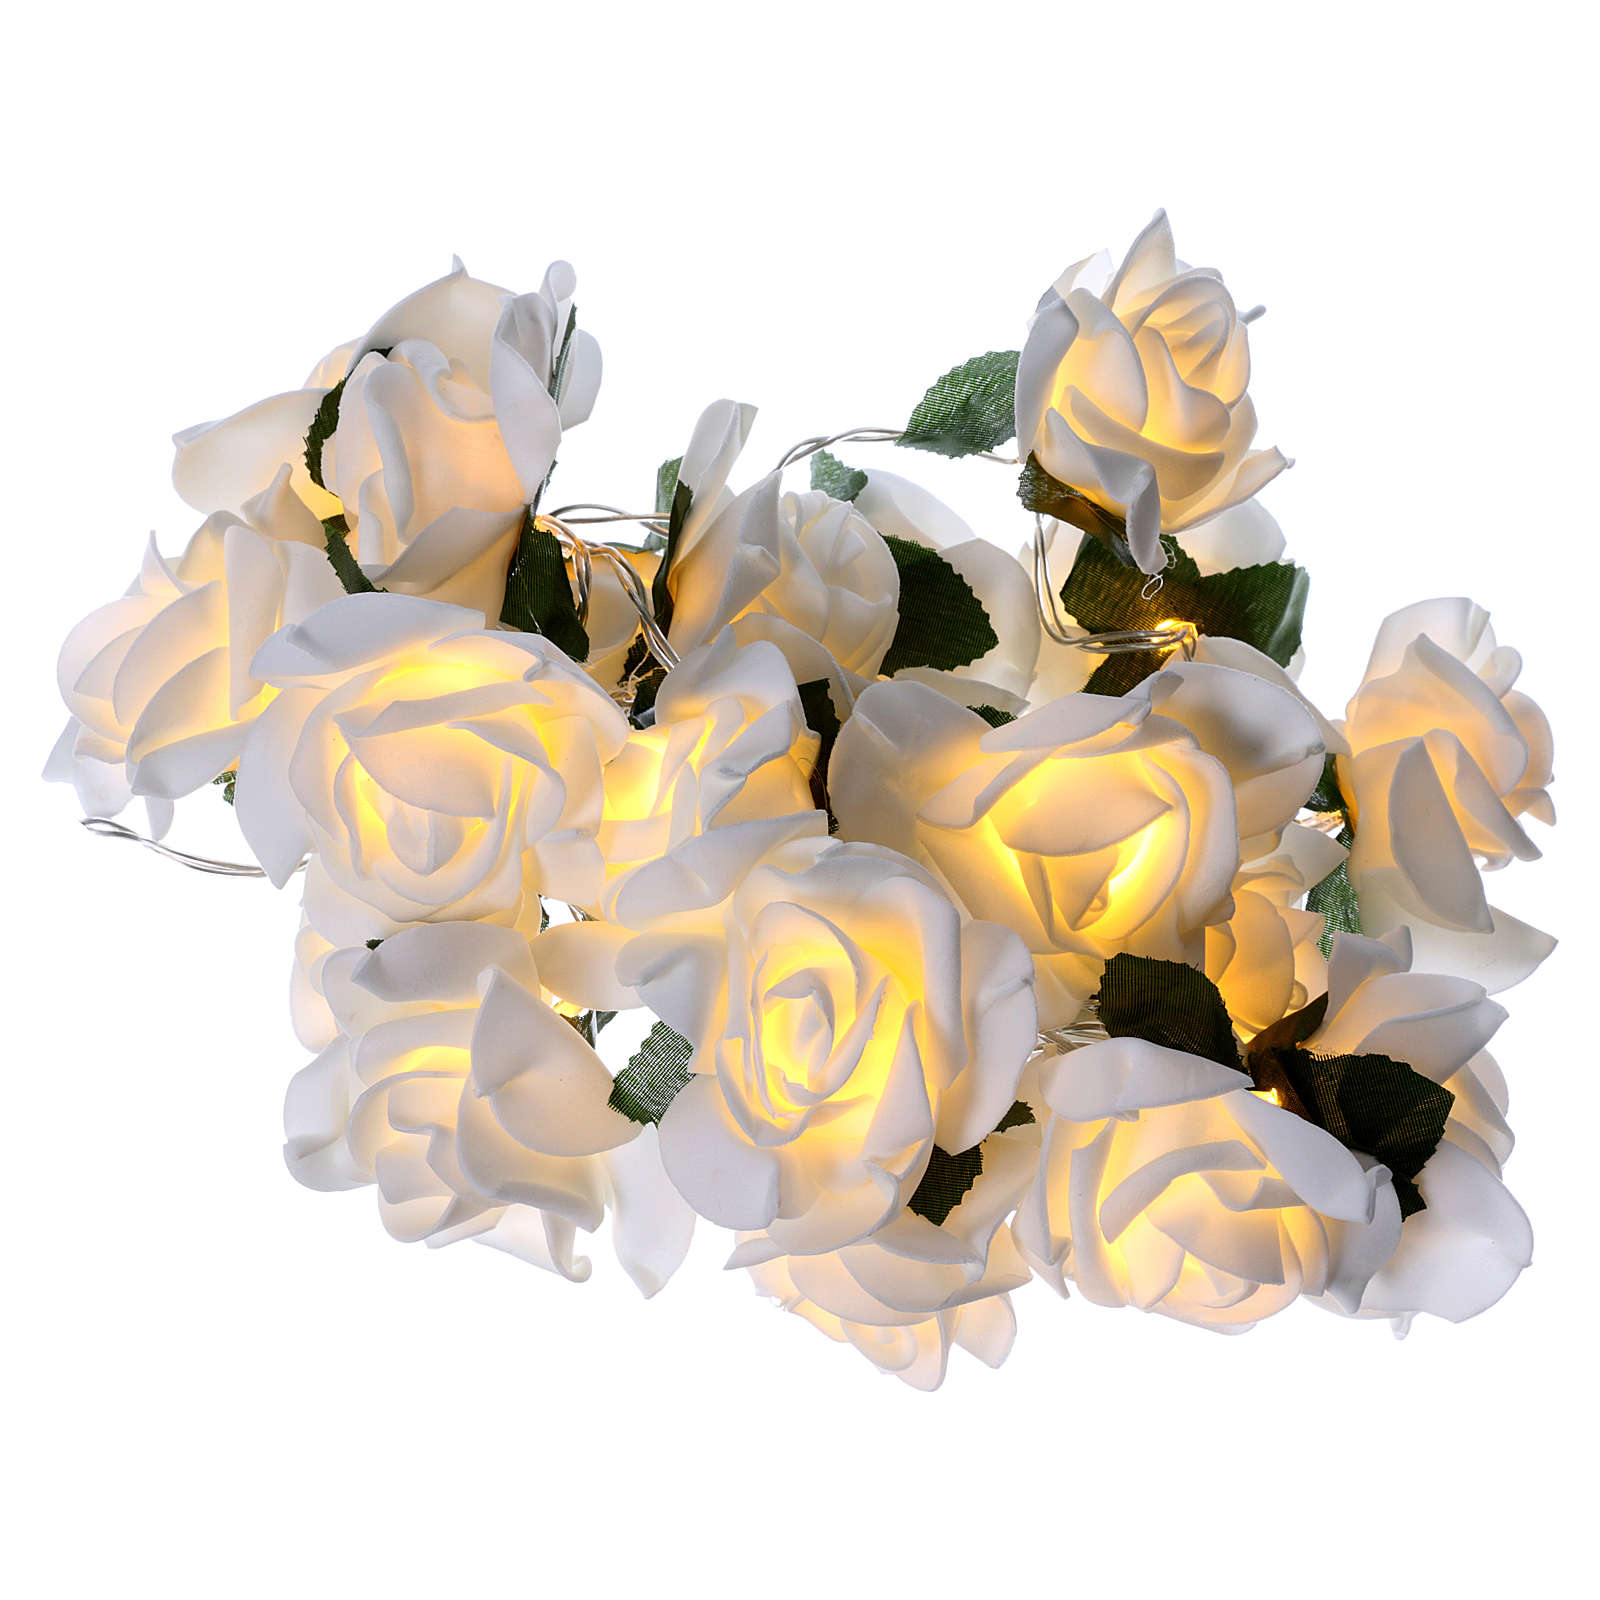 Light cable 20 leds white roses 3